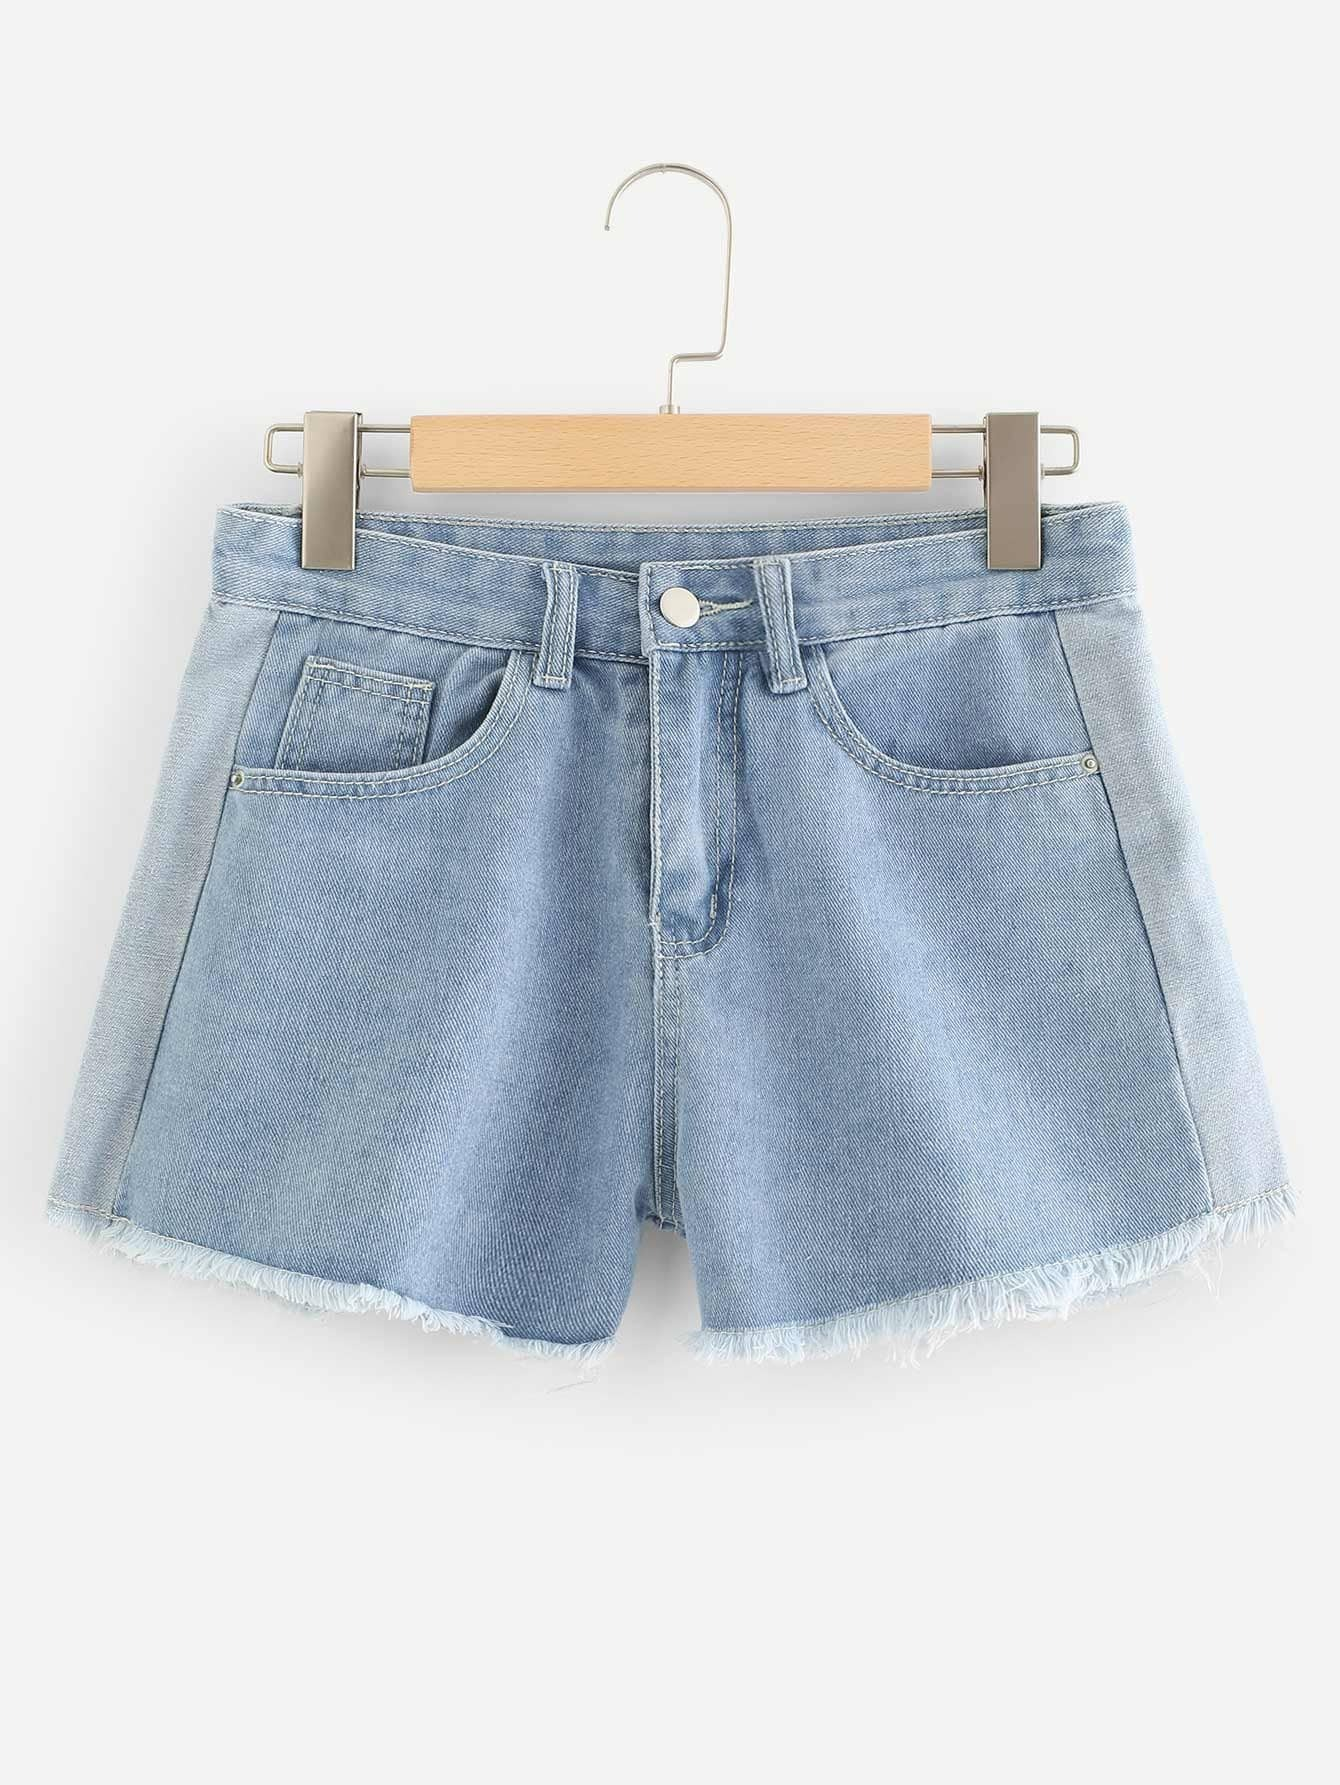 Raw Hem Denim Shorts zengli mens denim cargo shorts jeans casual vintage blue pockets biker jeans summer knee length denim shorts 40 42 44 46 48